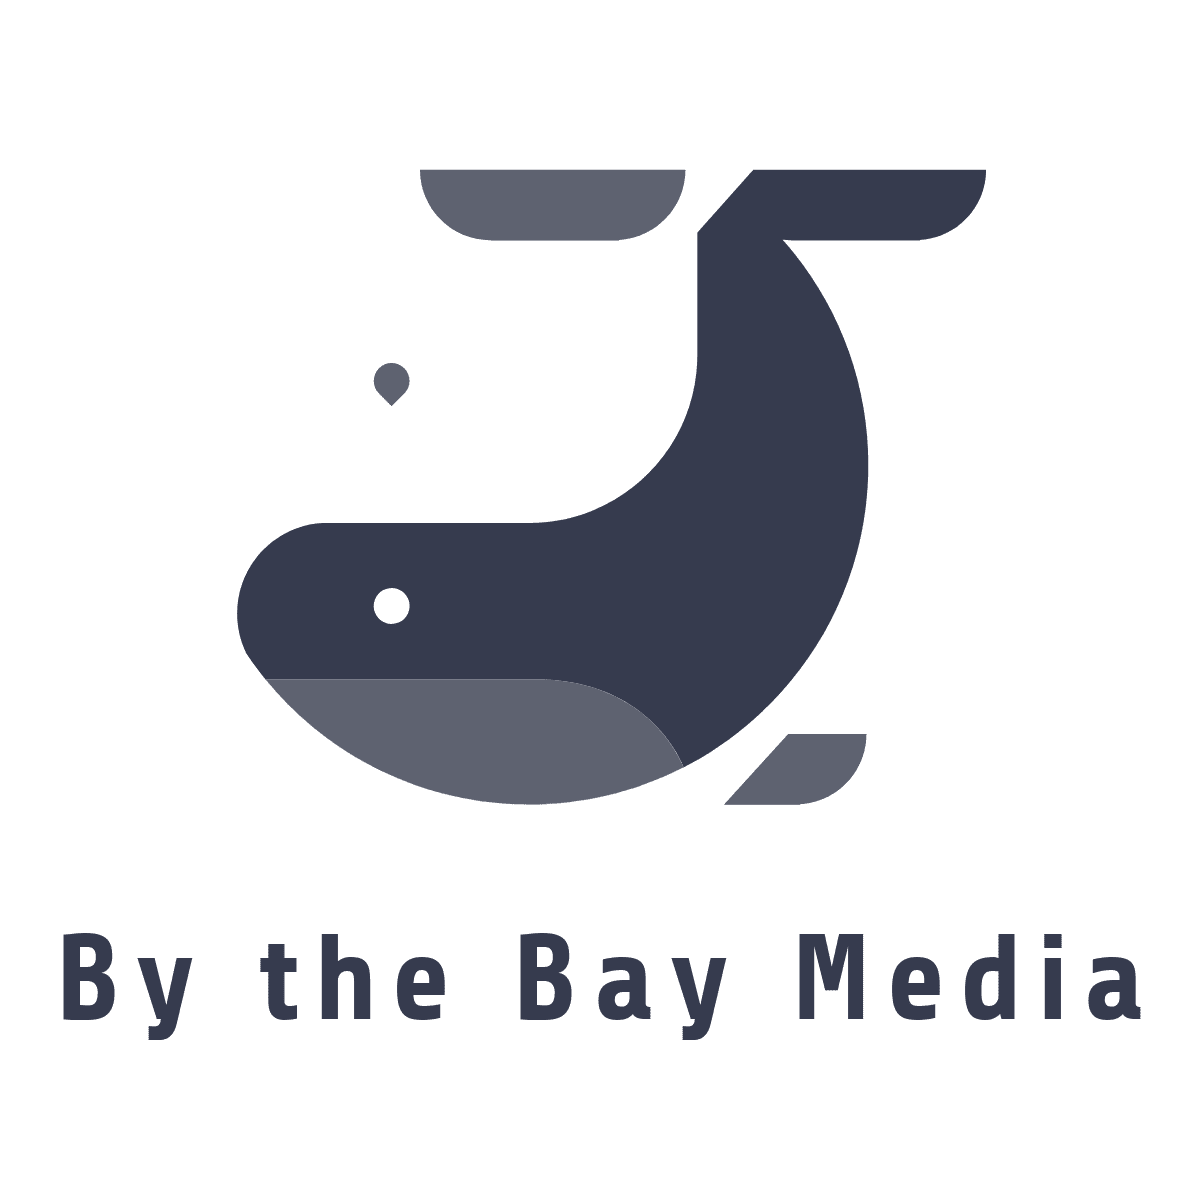 By the Bay Media